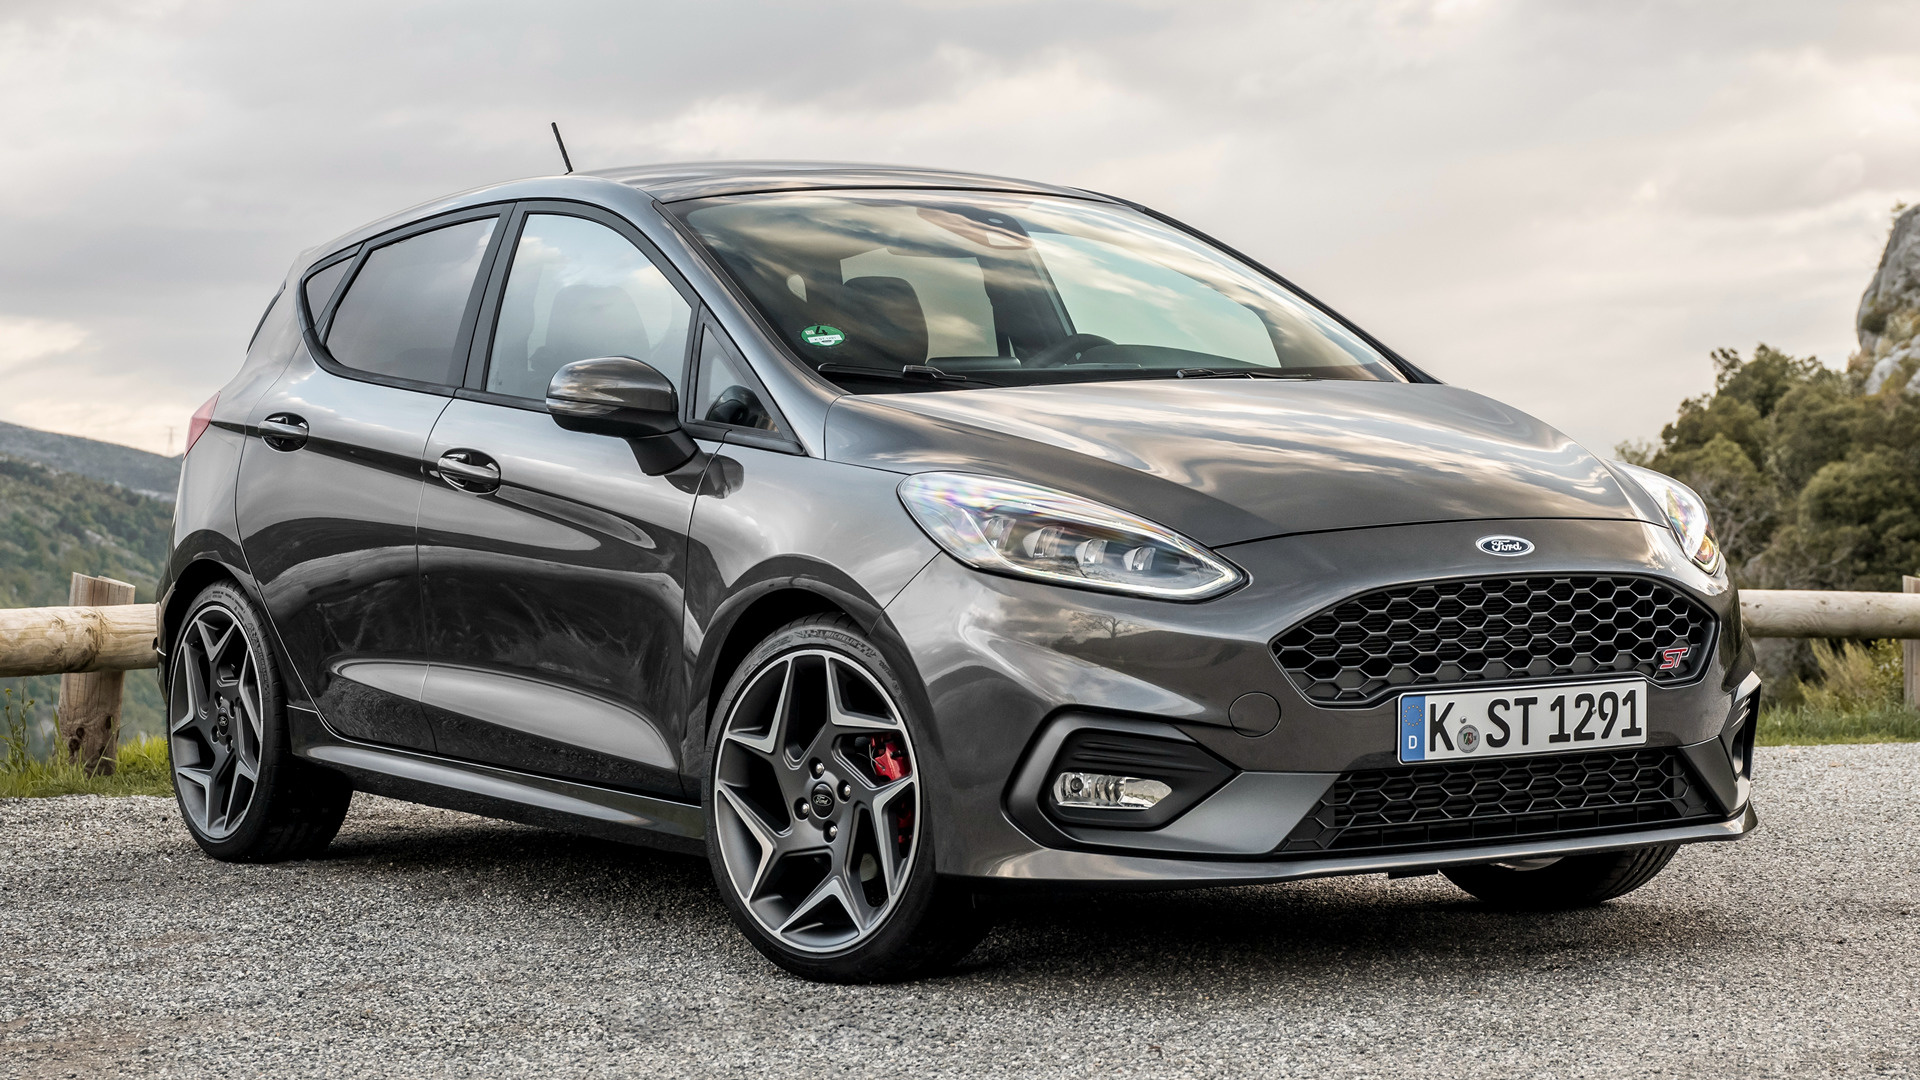 2018 Ford Fiesta St 5 Door Hd Wallpaper Background Image